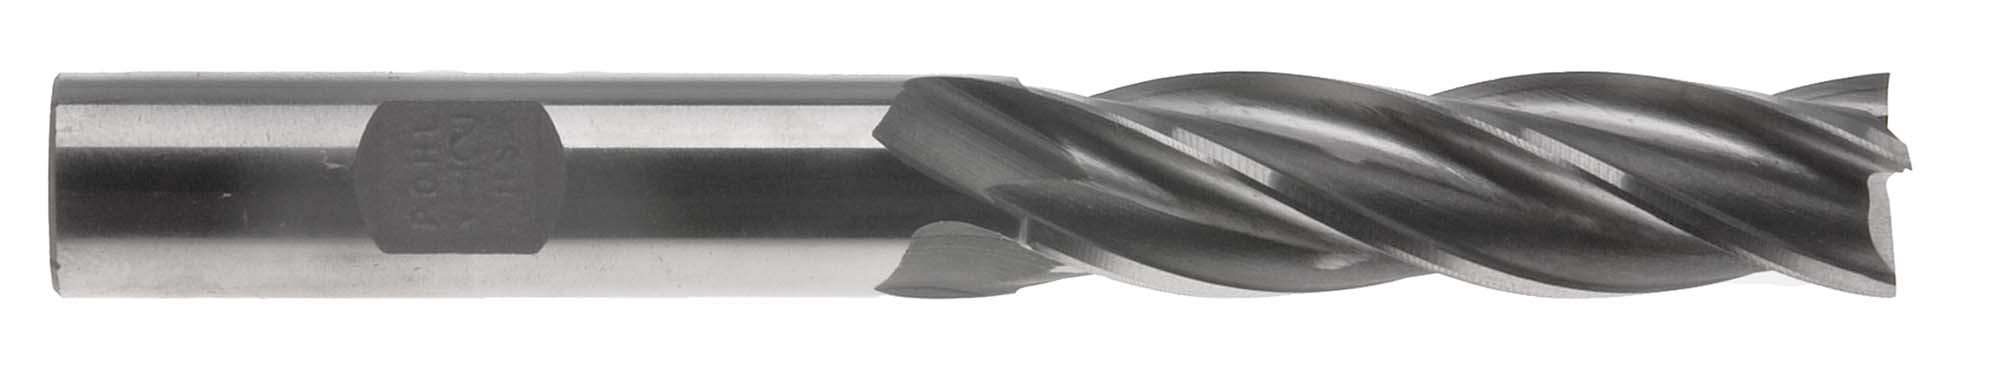 "EM-FL16  1/2"" 4 Flute Long End Mill - 1/2"" Shank, High Speed Steel"